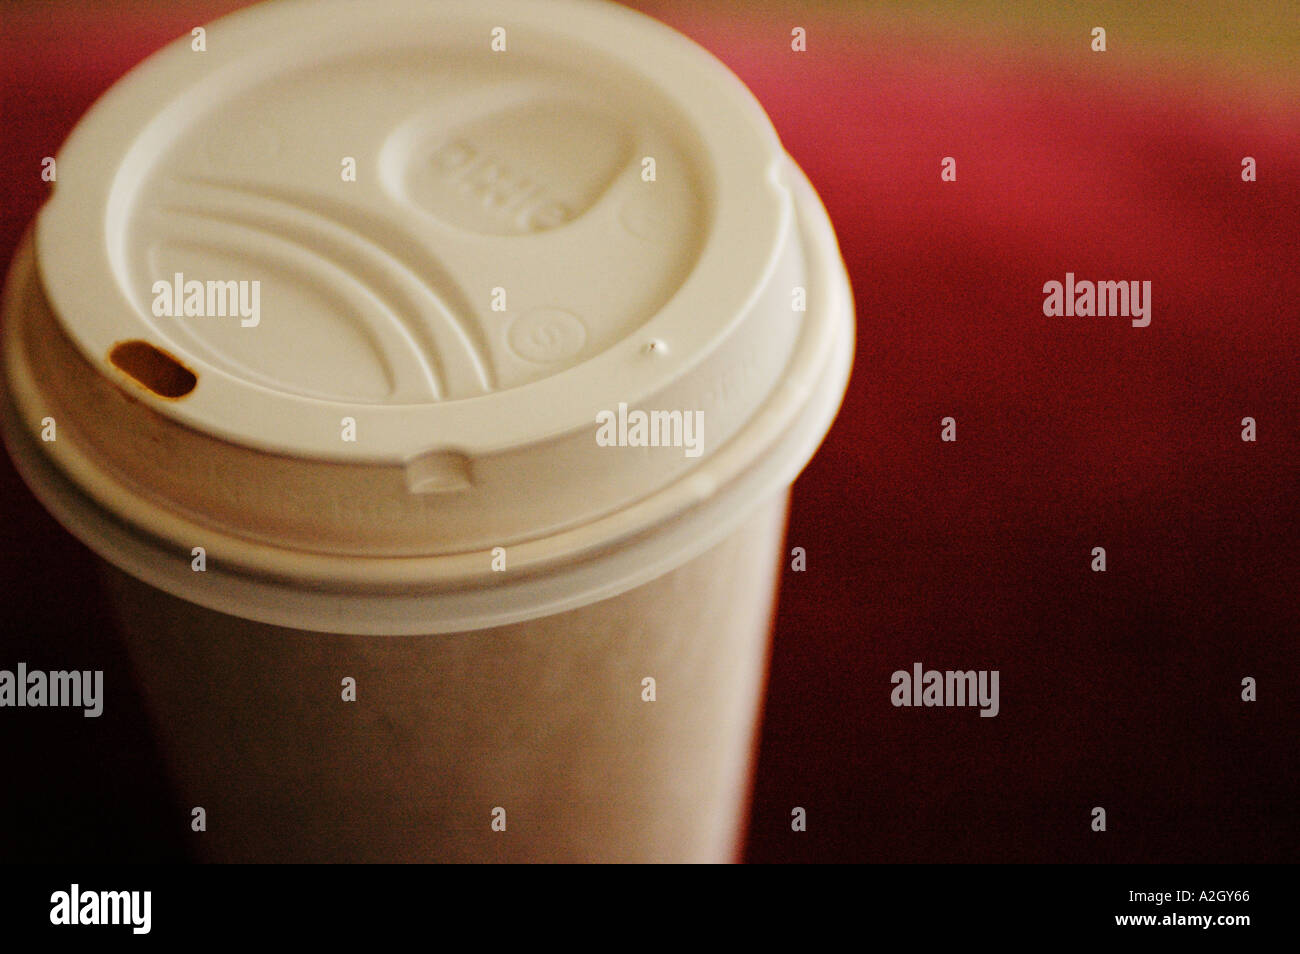 Still life Coffee cup - Stock Image